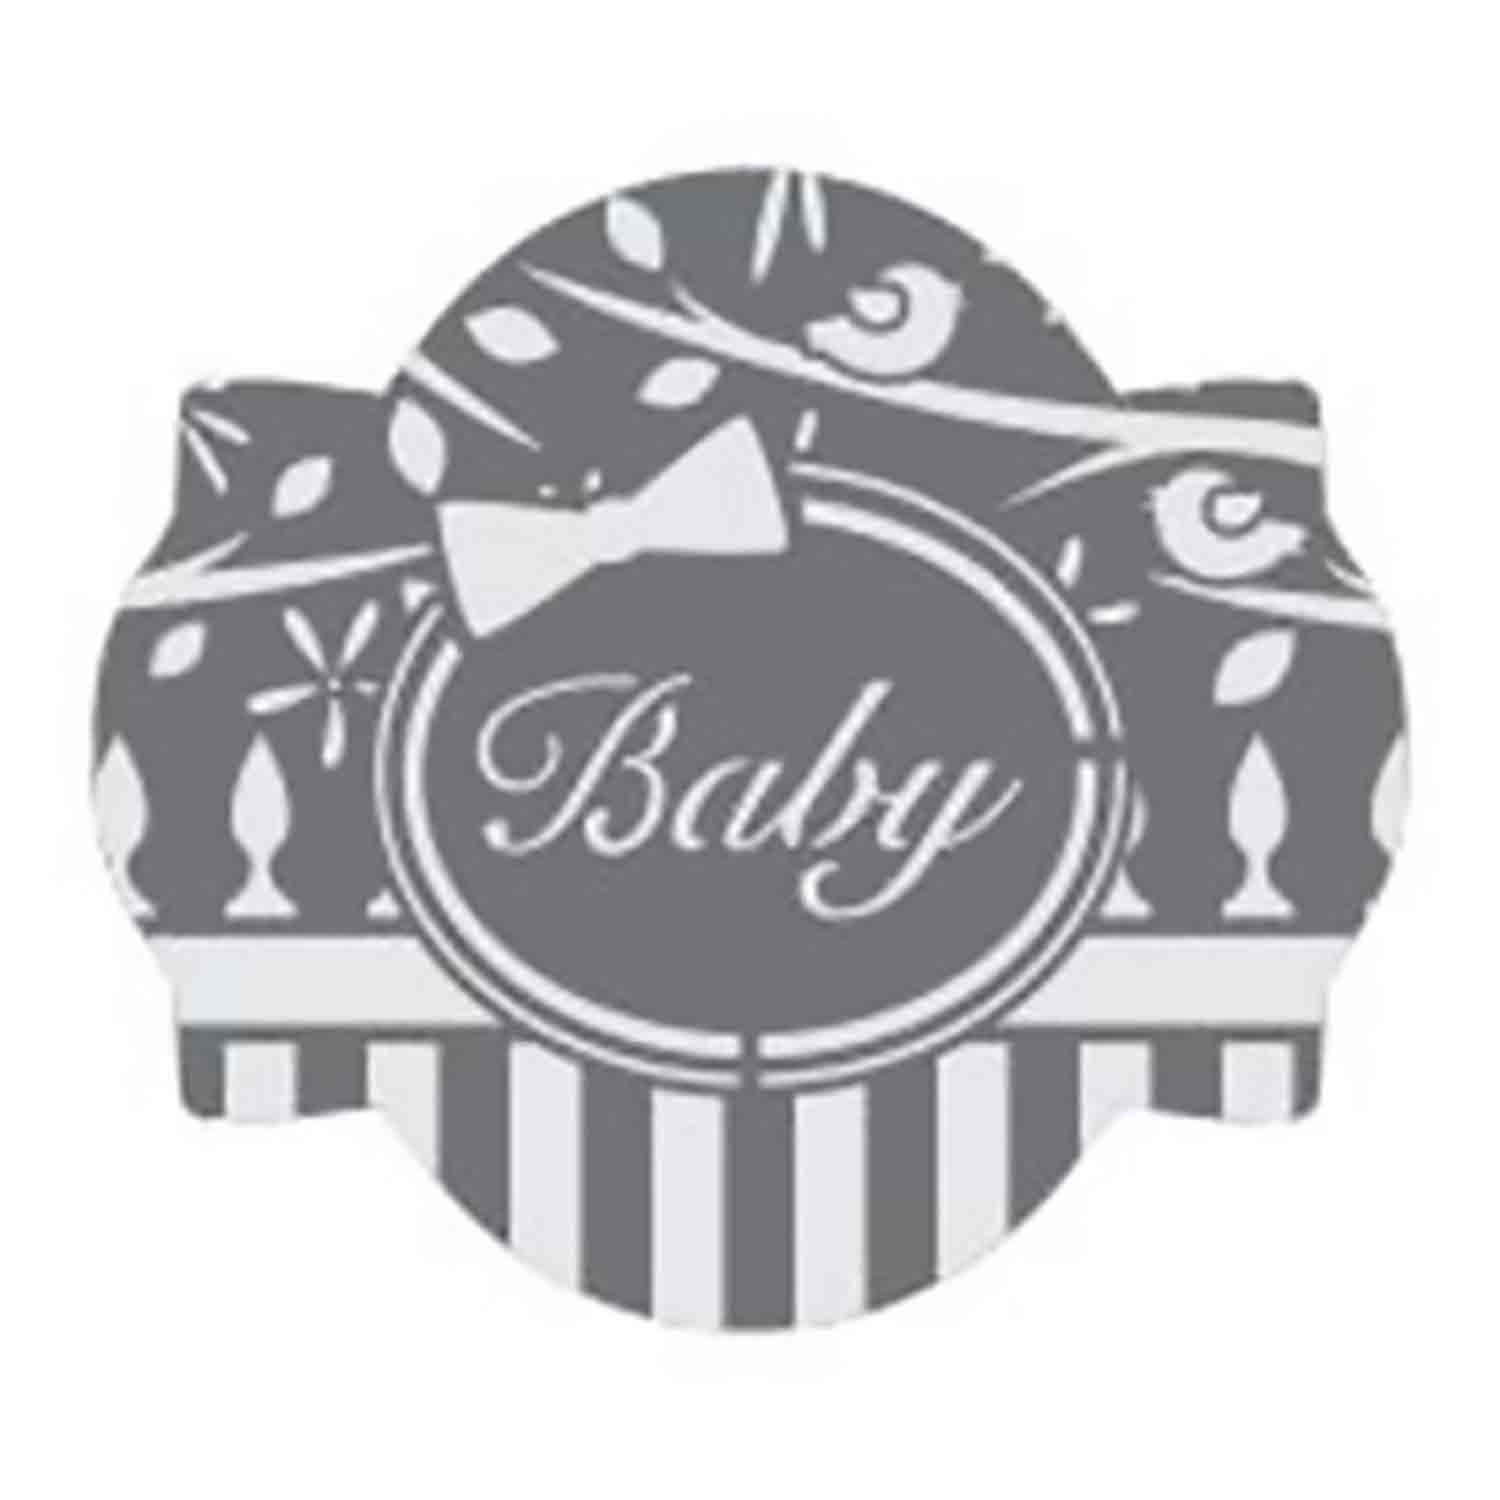 Baby 2 Cookie Stencil Set by Julia M Usher